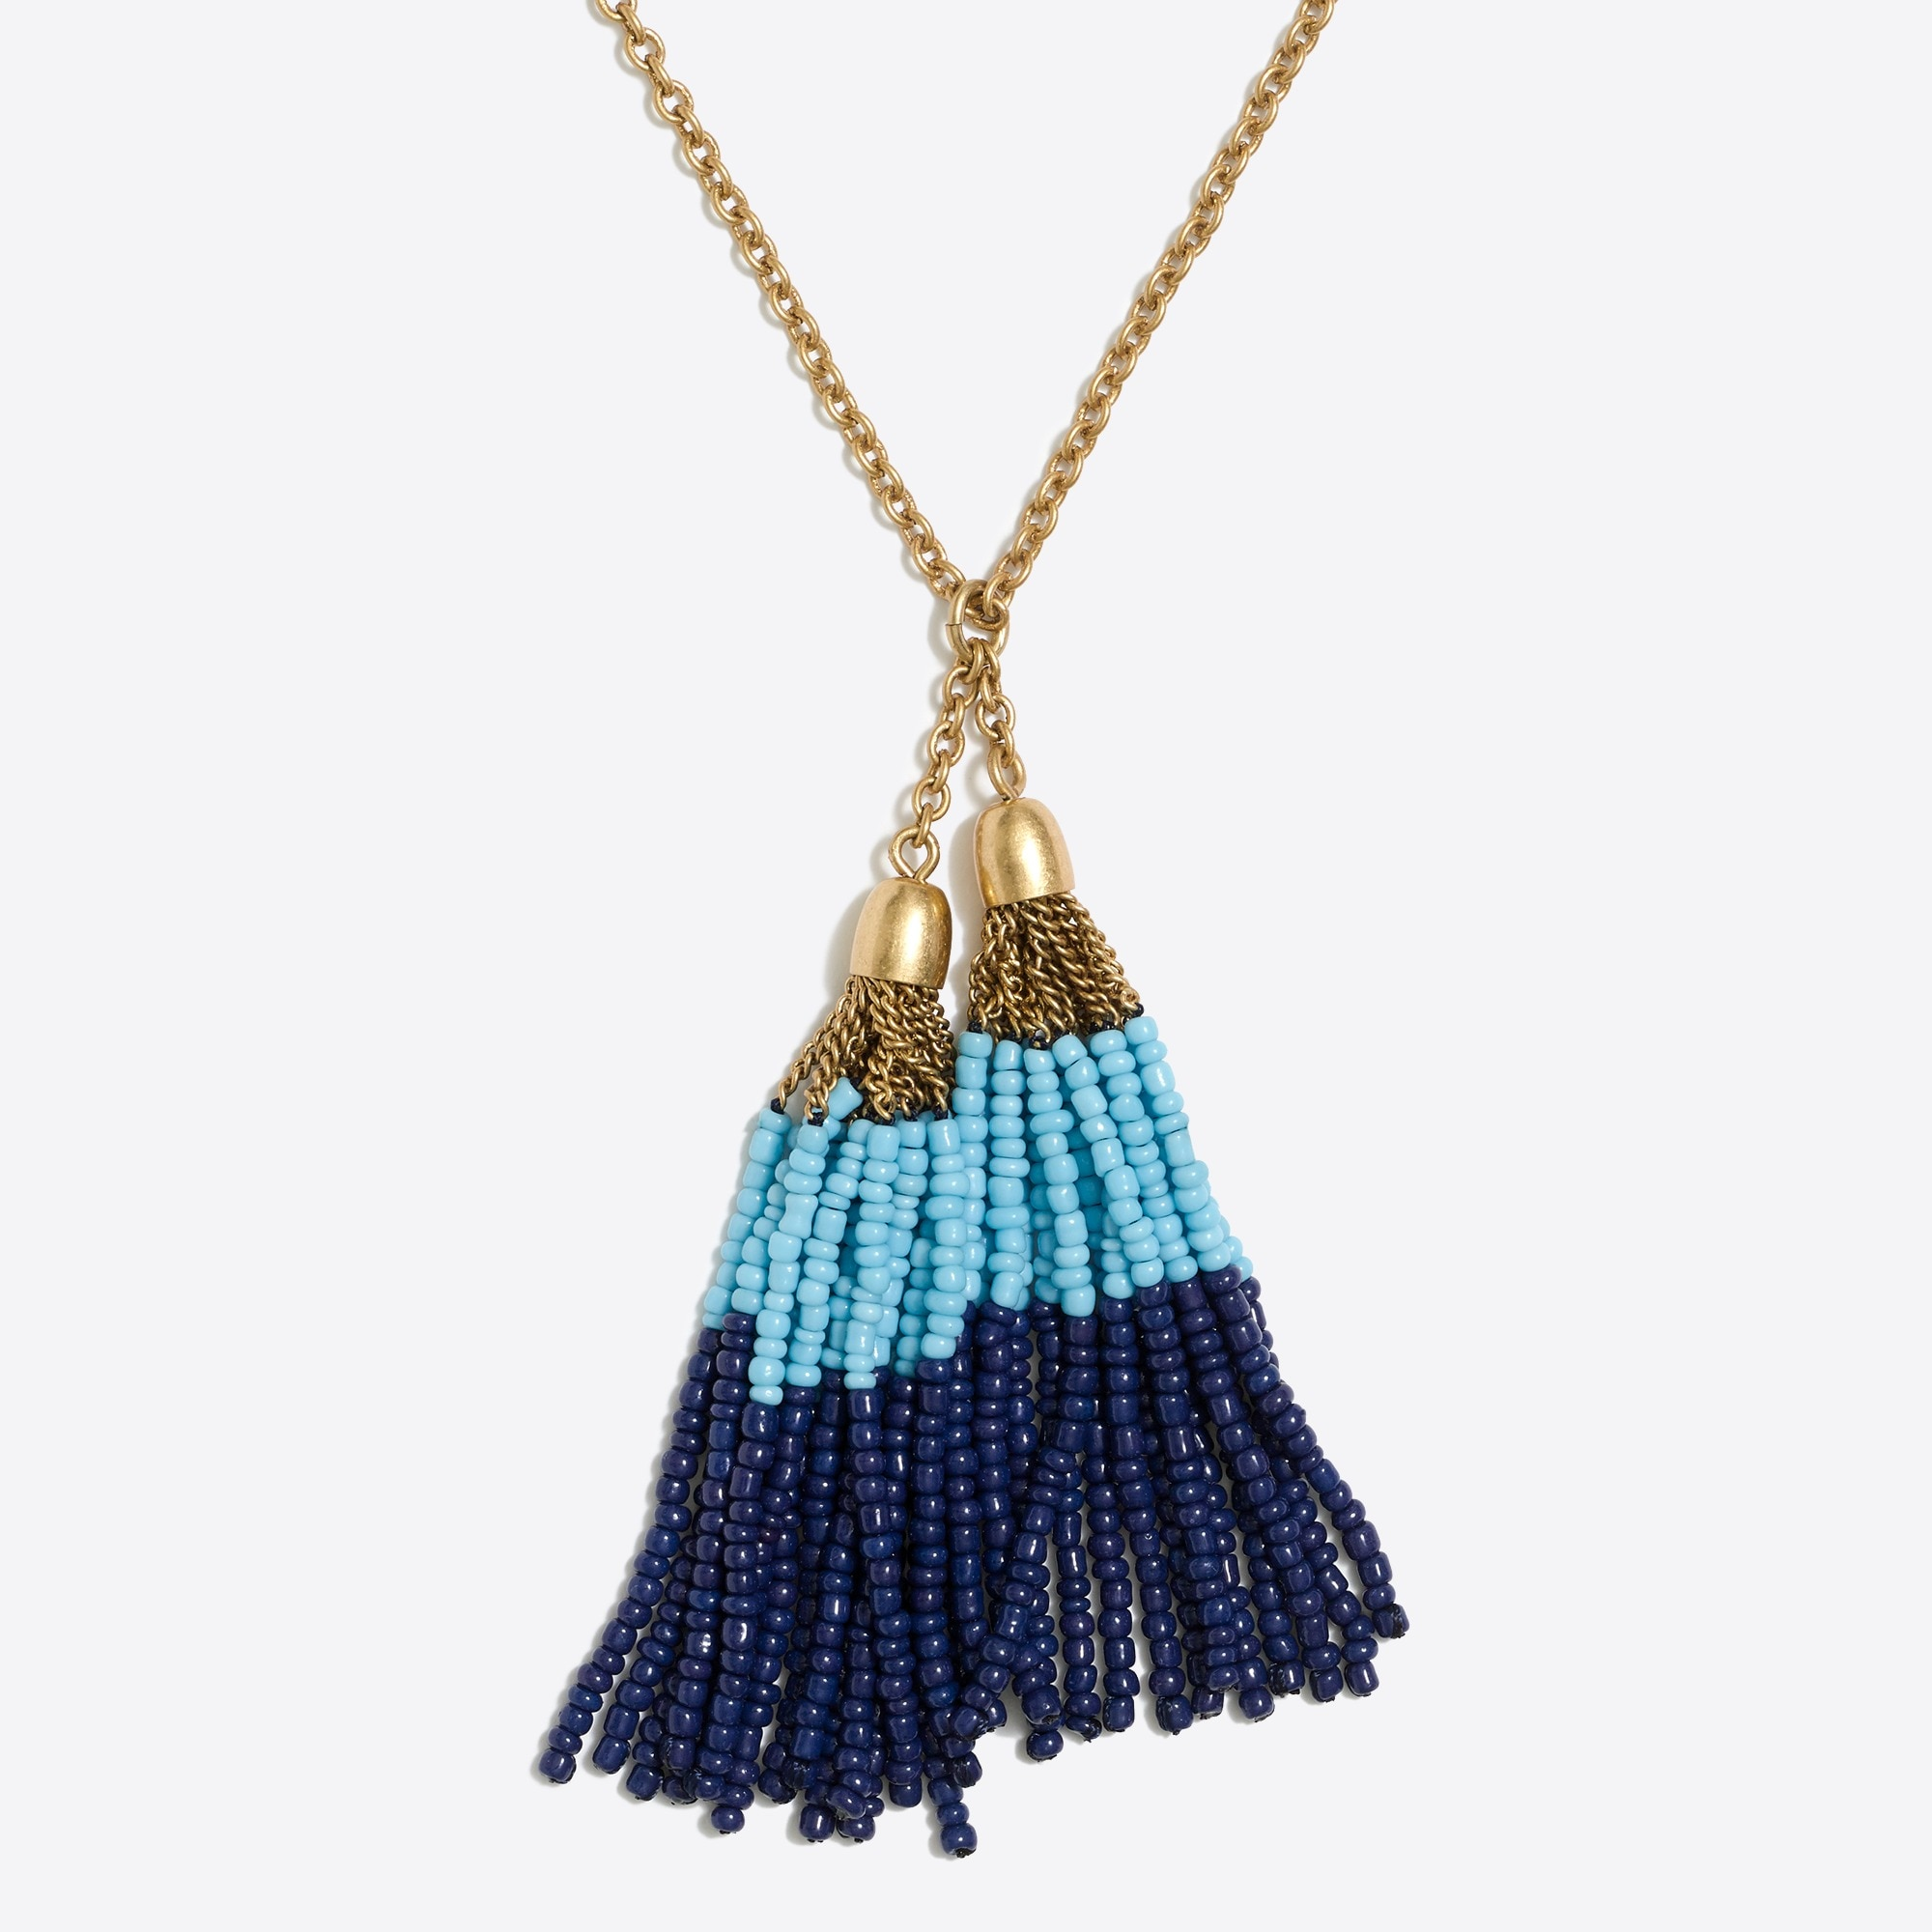 double tassel pendant necklace : factorywomen necklaces